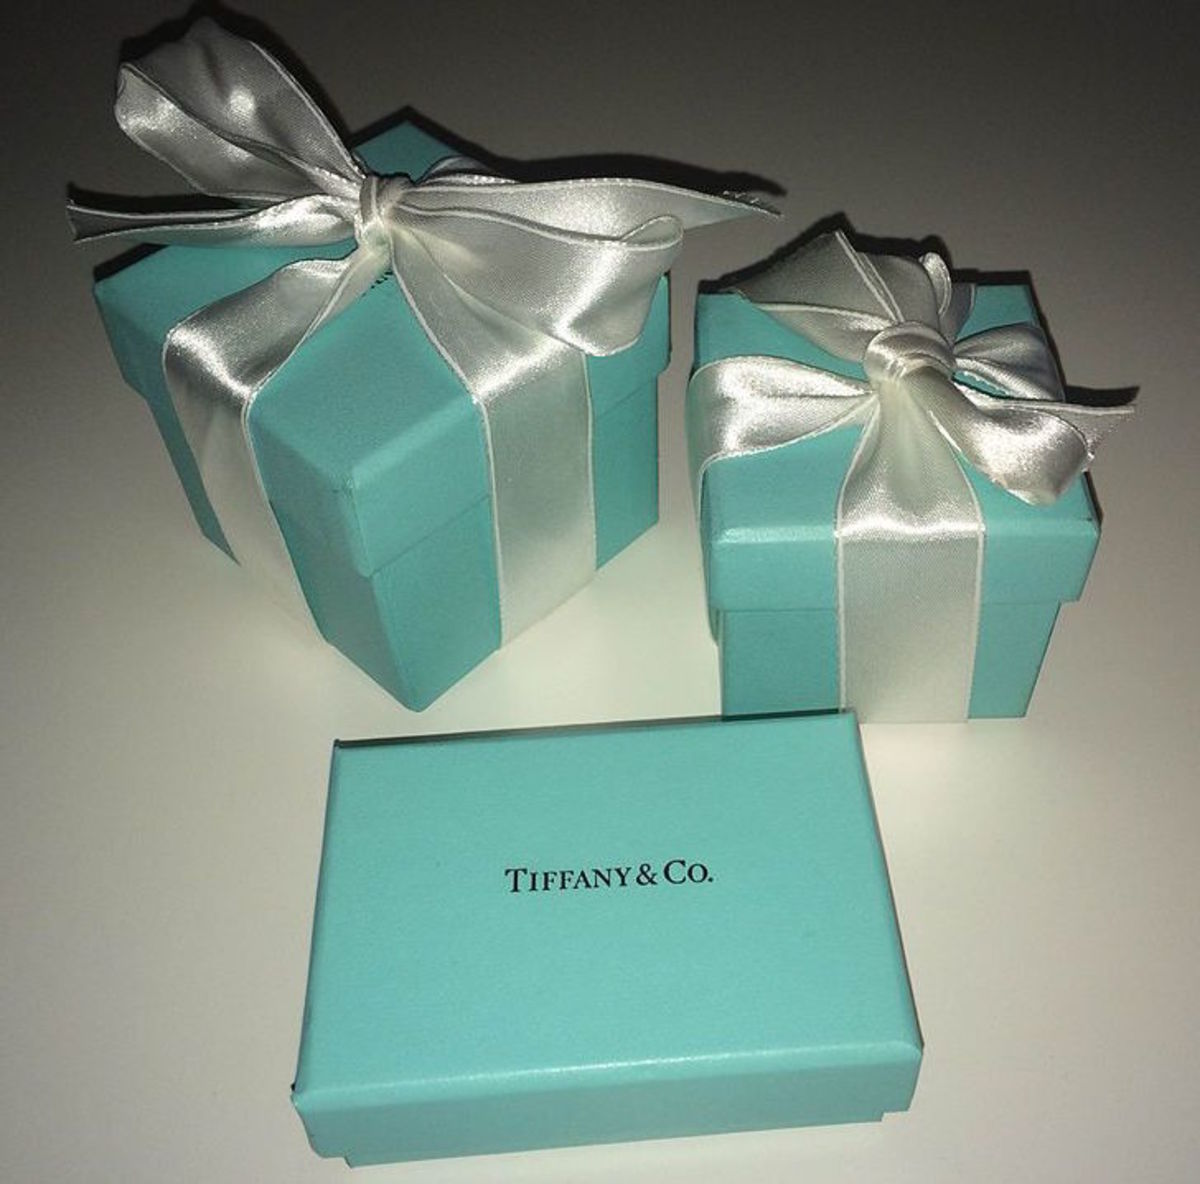 Tiffanys, Fifth Avenue, New York